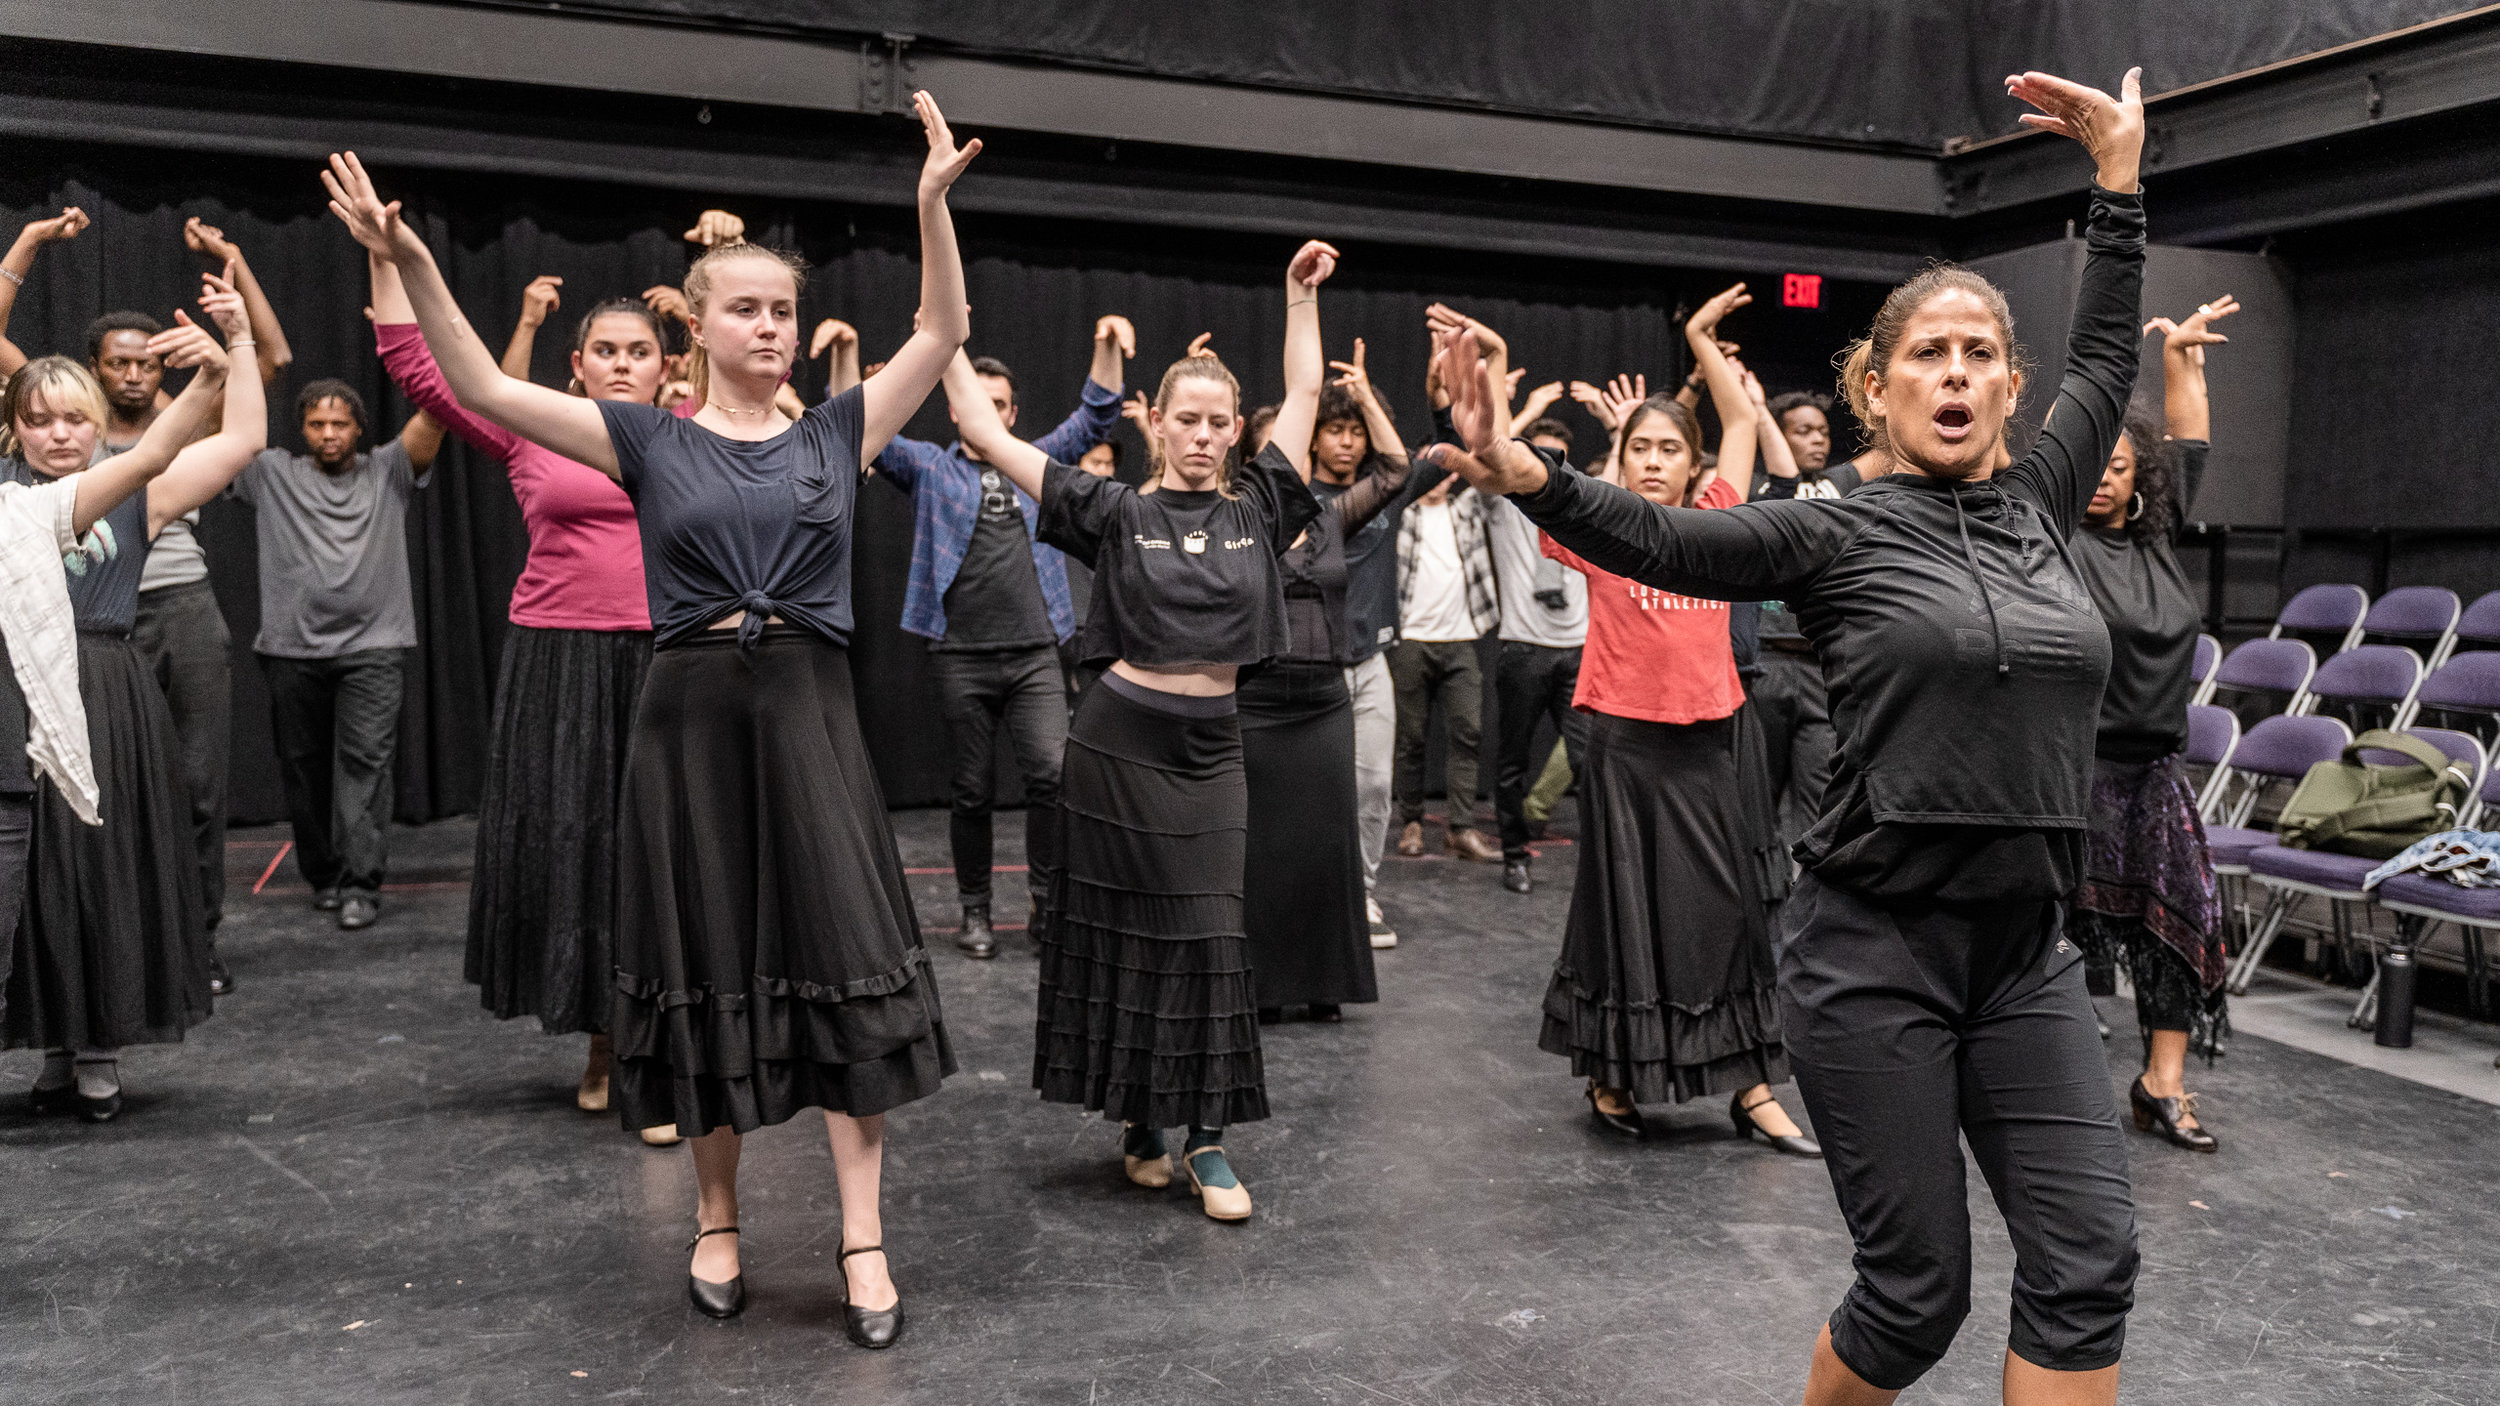 Flamenco Macbeth co-choreographer and SMC Theatre & Dance faculty member Cihtli Ocampo (front-right, in all black) teaches flamenco choreography to the cast of SMC's upcoming production of Flamenco Macbeth at the SMC Studio Stage, the space where Flamenco Macbeth will premiere in a month, on Thursday, March 21, 2019. Flamenco Macbeth is an adaptation of Shakespeare's Macbeth by SMC Theatre Arts department chair Perviz Sawoski. The play will be performed at the SMC Studio Stage, a 100-seat thrust stage, from April 26 through May 5, 2019. (Glenn Zucman/The Corsair)